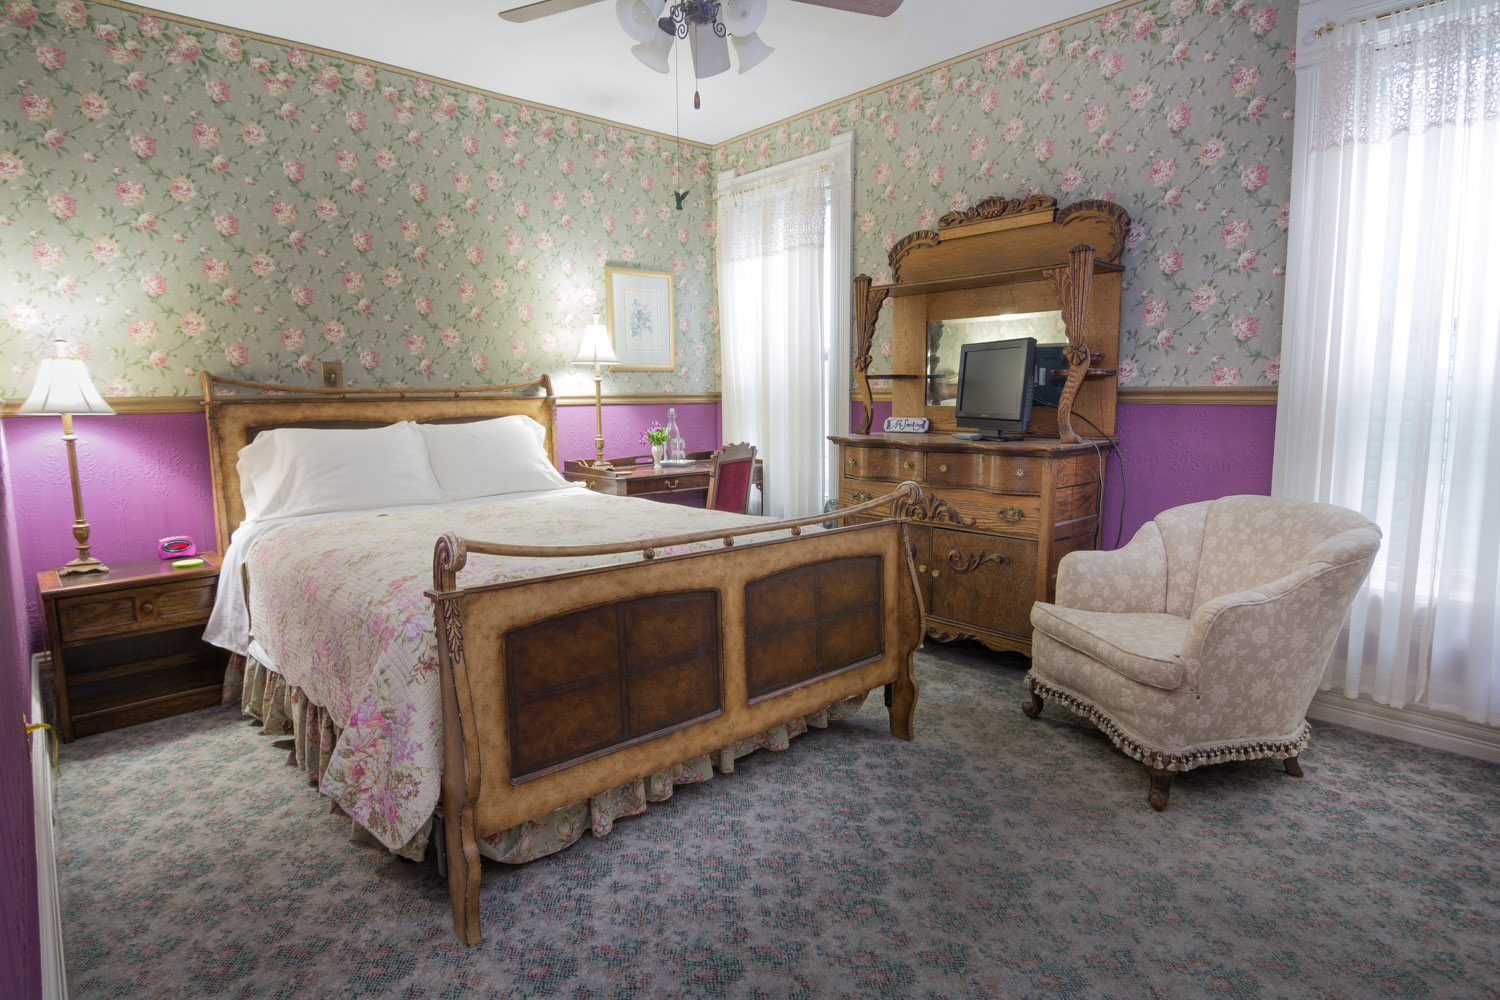 Harrison-House-Bed-and-Breakfast-Columbus-Ohio-Room-3-1